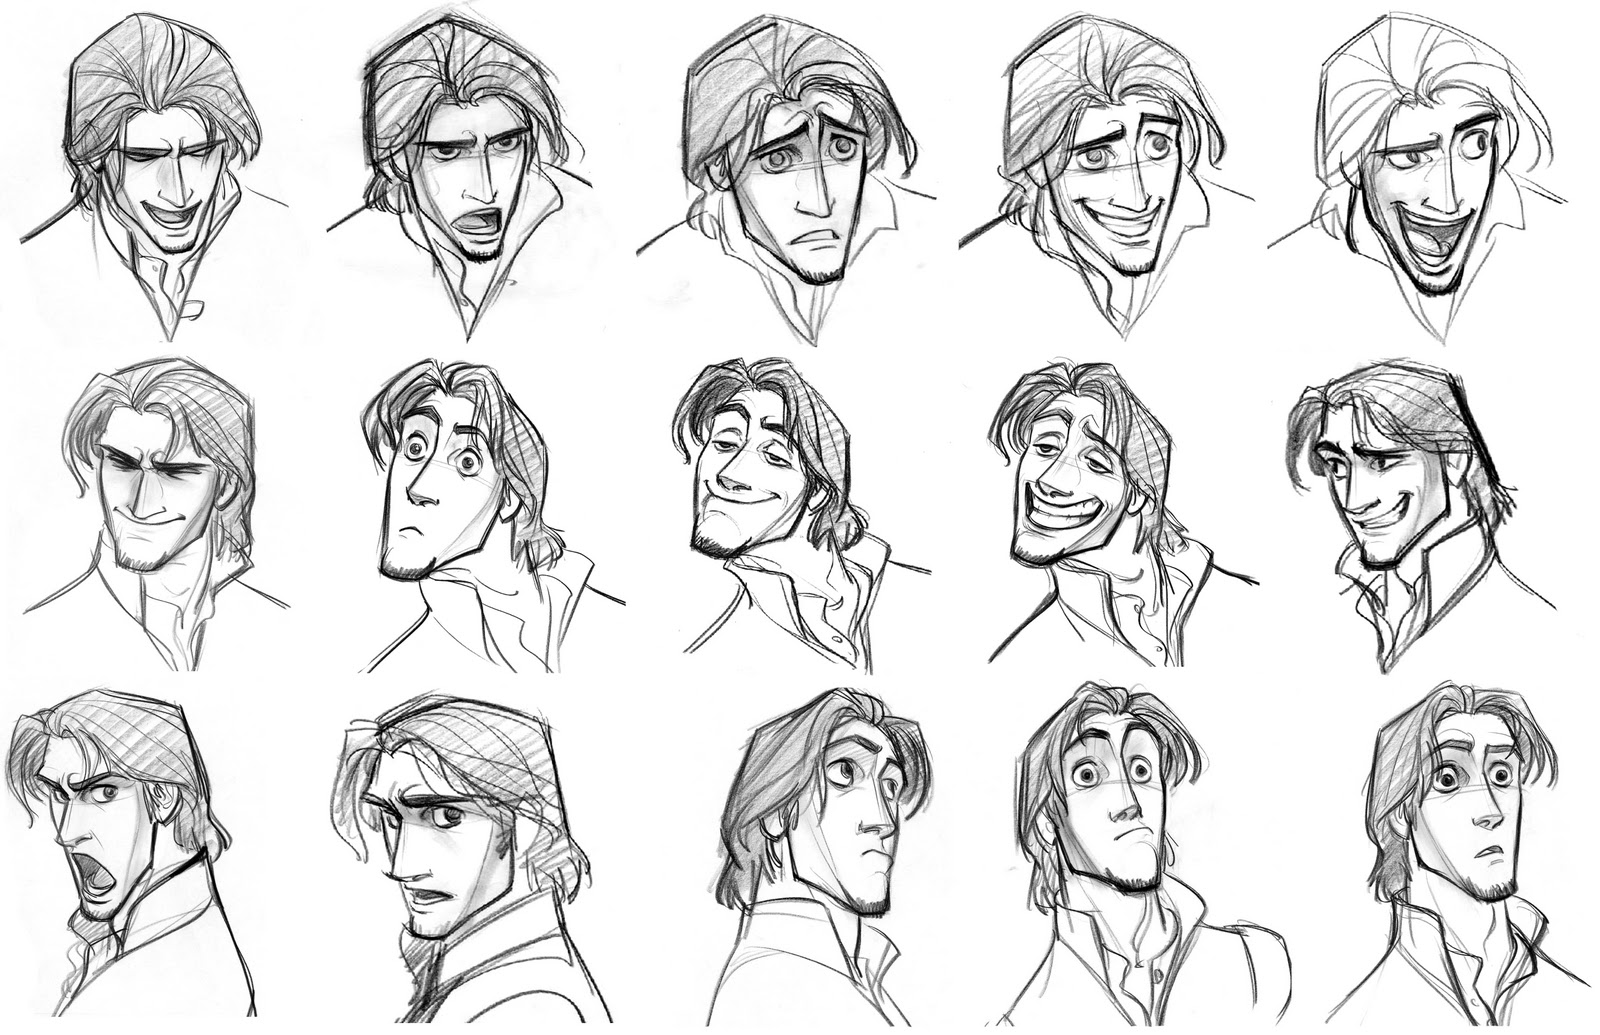 characters drawings one blog to rule them all character drawings aragorn characters drawings